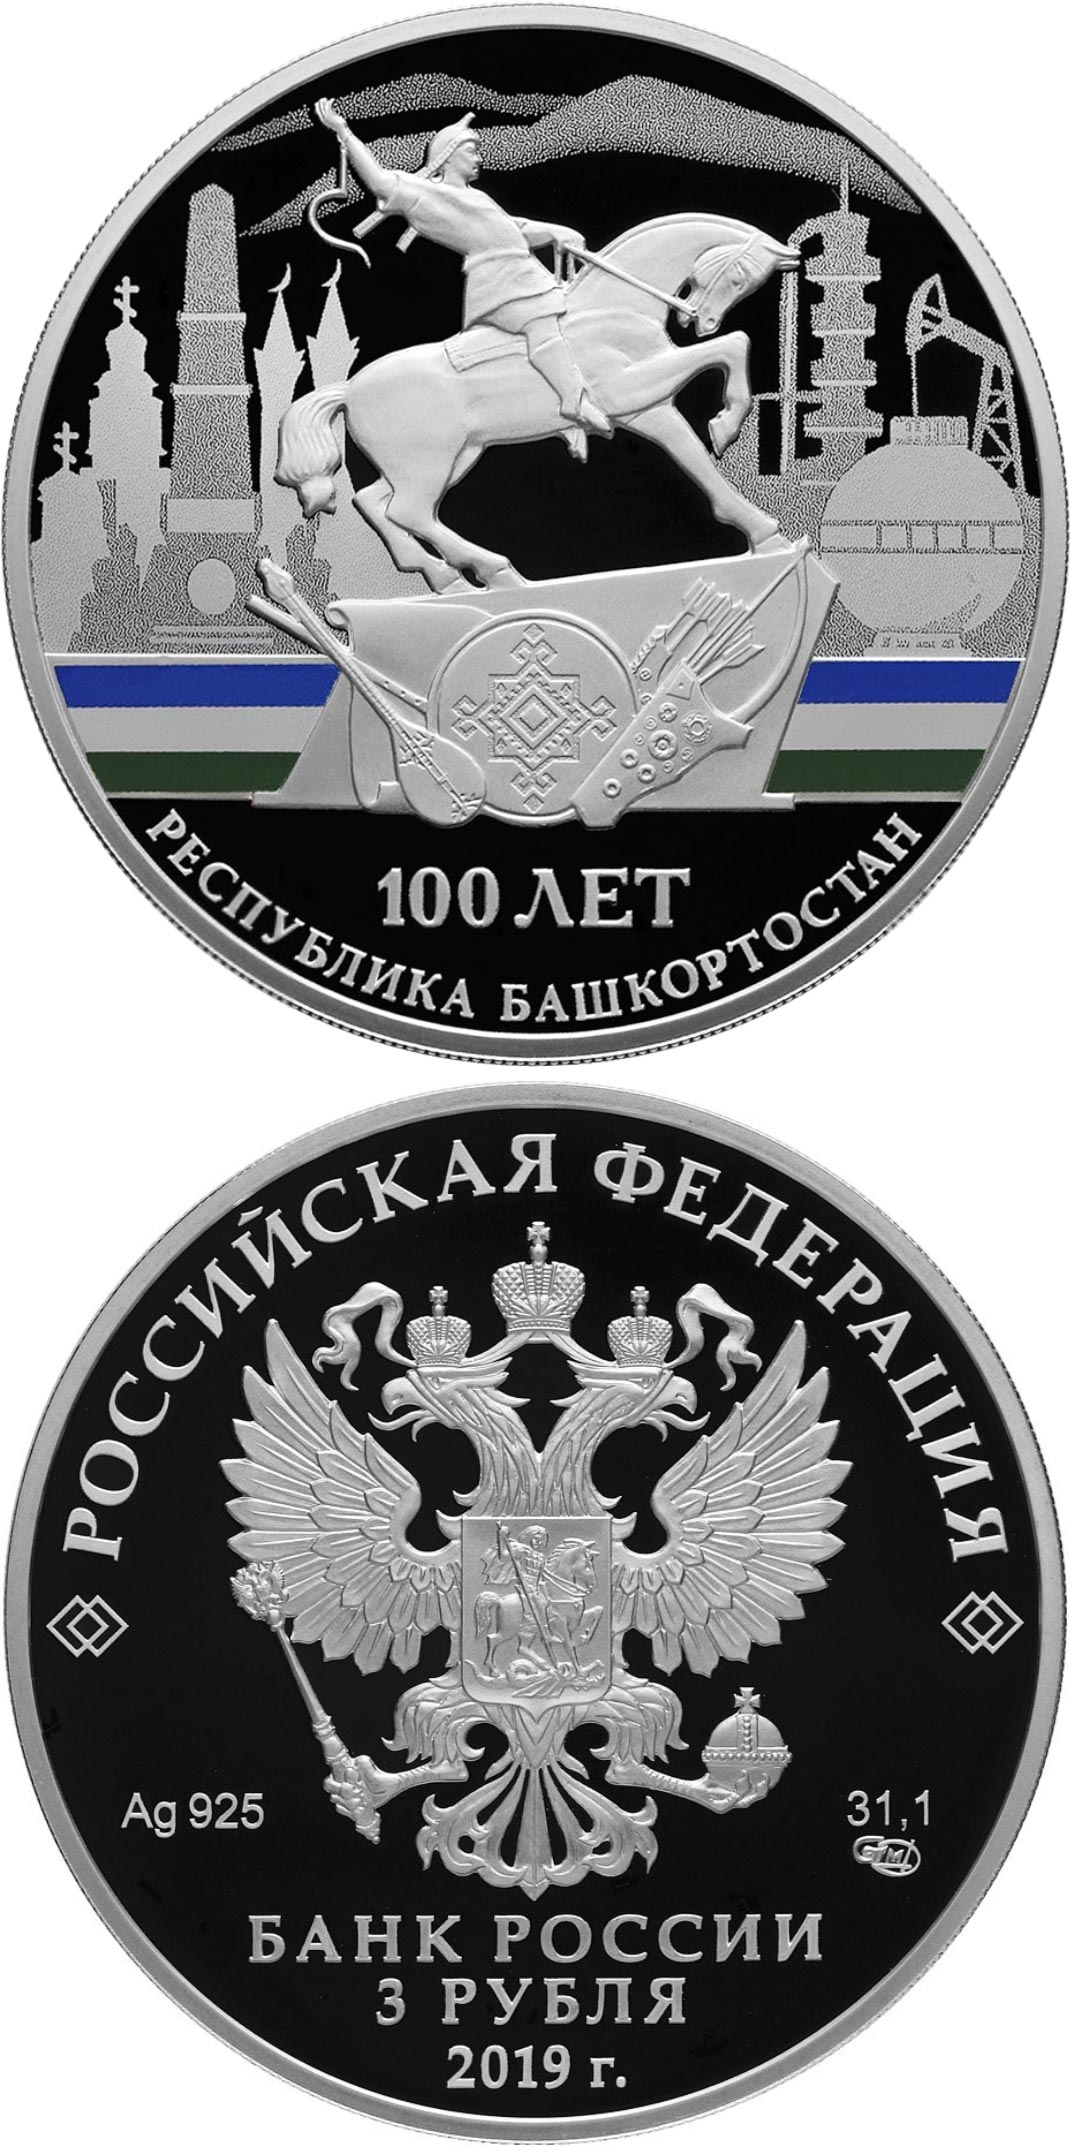 Image of 3 rubles coin - Centenary of the Foundation of the Republic of Bashkortostan | Russia 2019.  The Silver coin is of Proof quality.